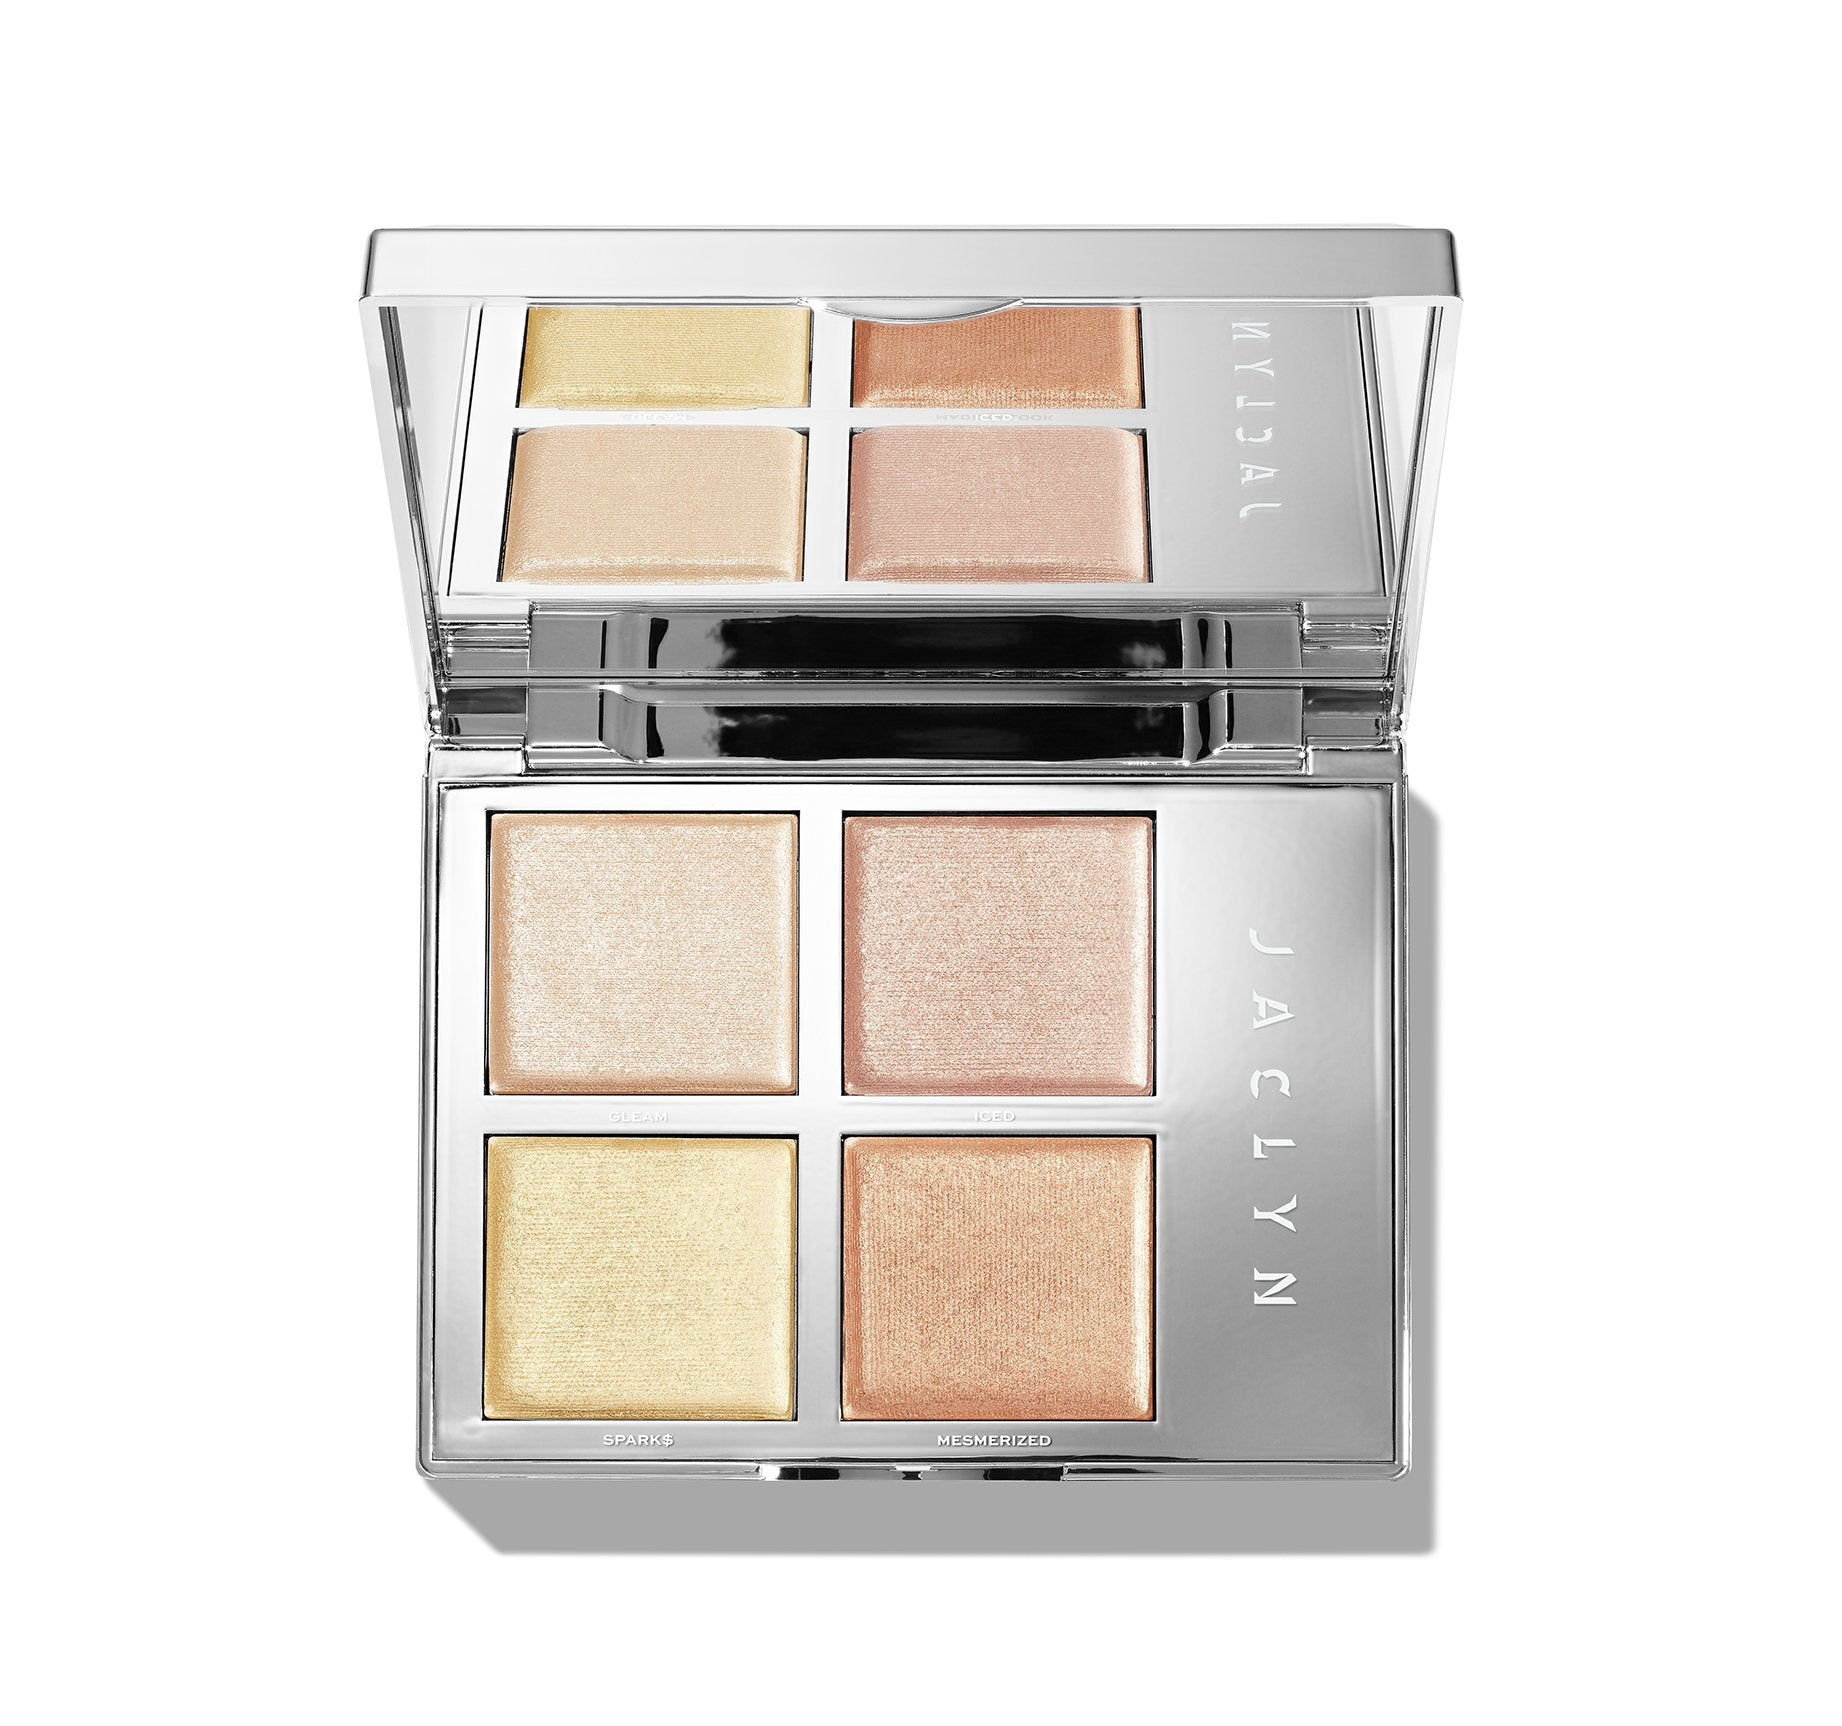 ACCENT LIGHT HIGHLIGHTER PALETTE - THE FLASH, view larger image